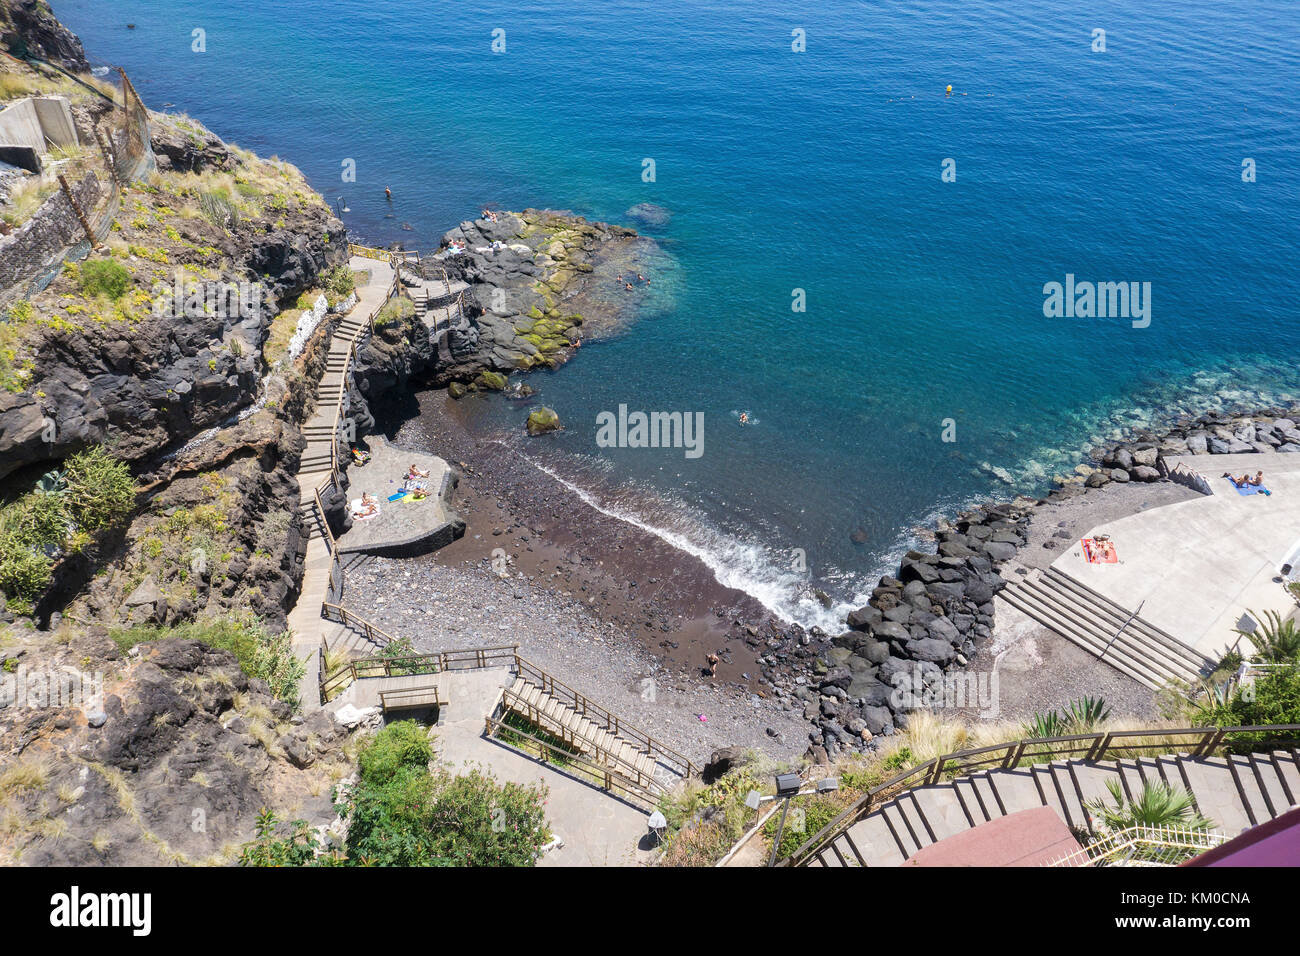 View from a Appartment skyscrapper down to a small dark beach,Tabaiba, Tenerife island, Canary island, Spain - Stock Image